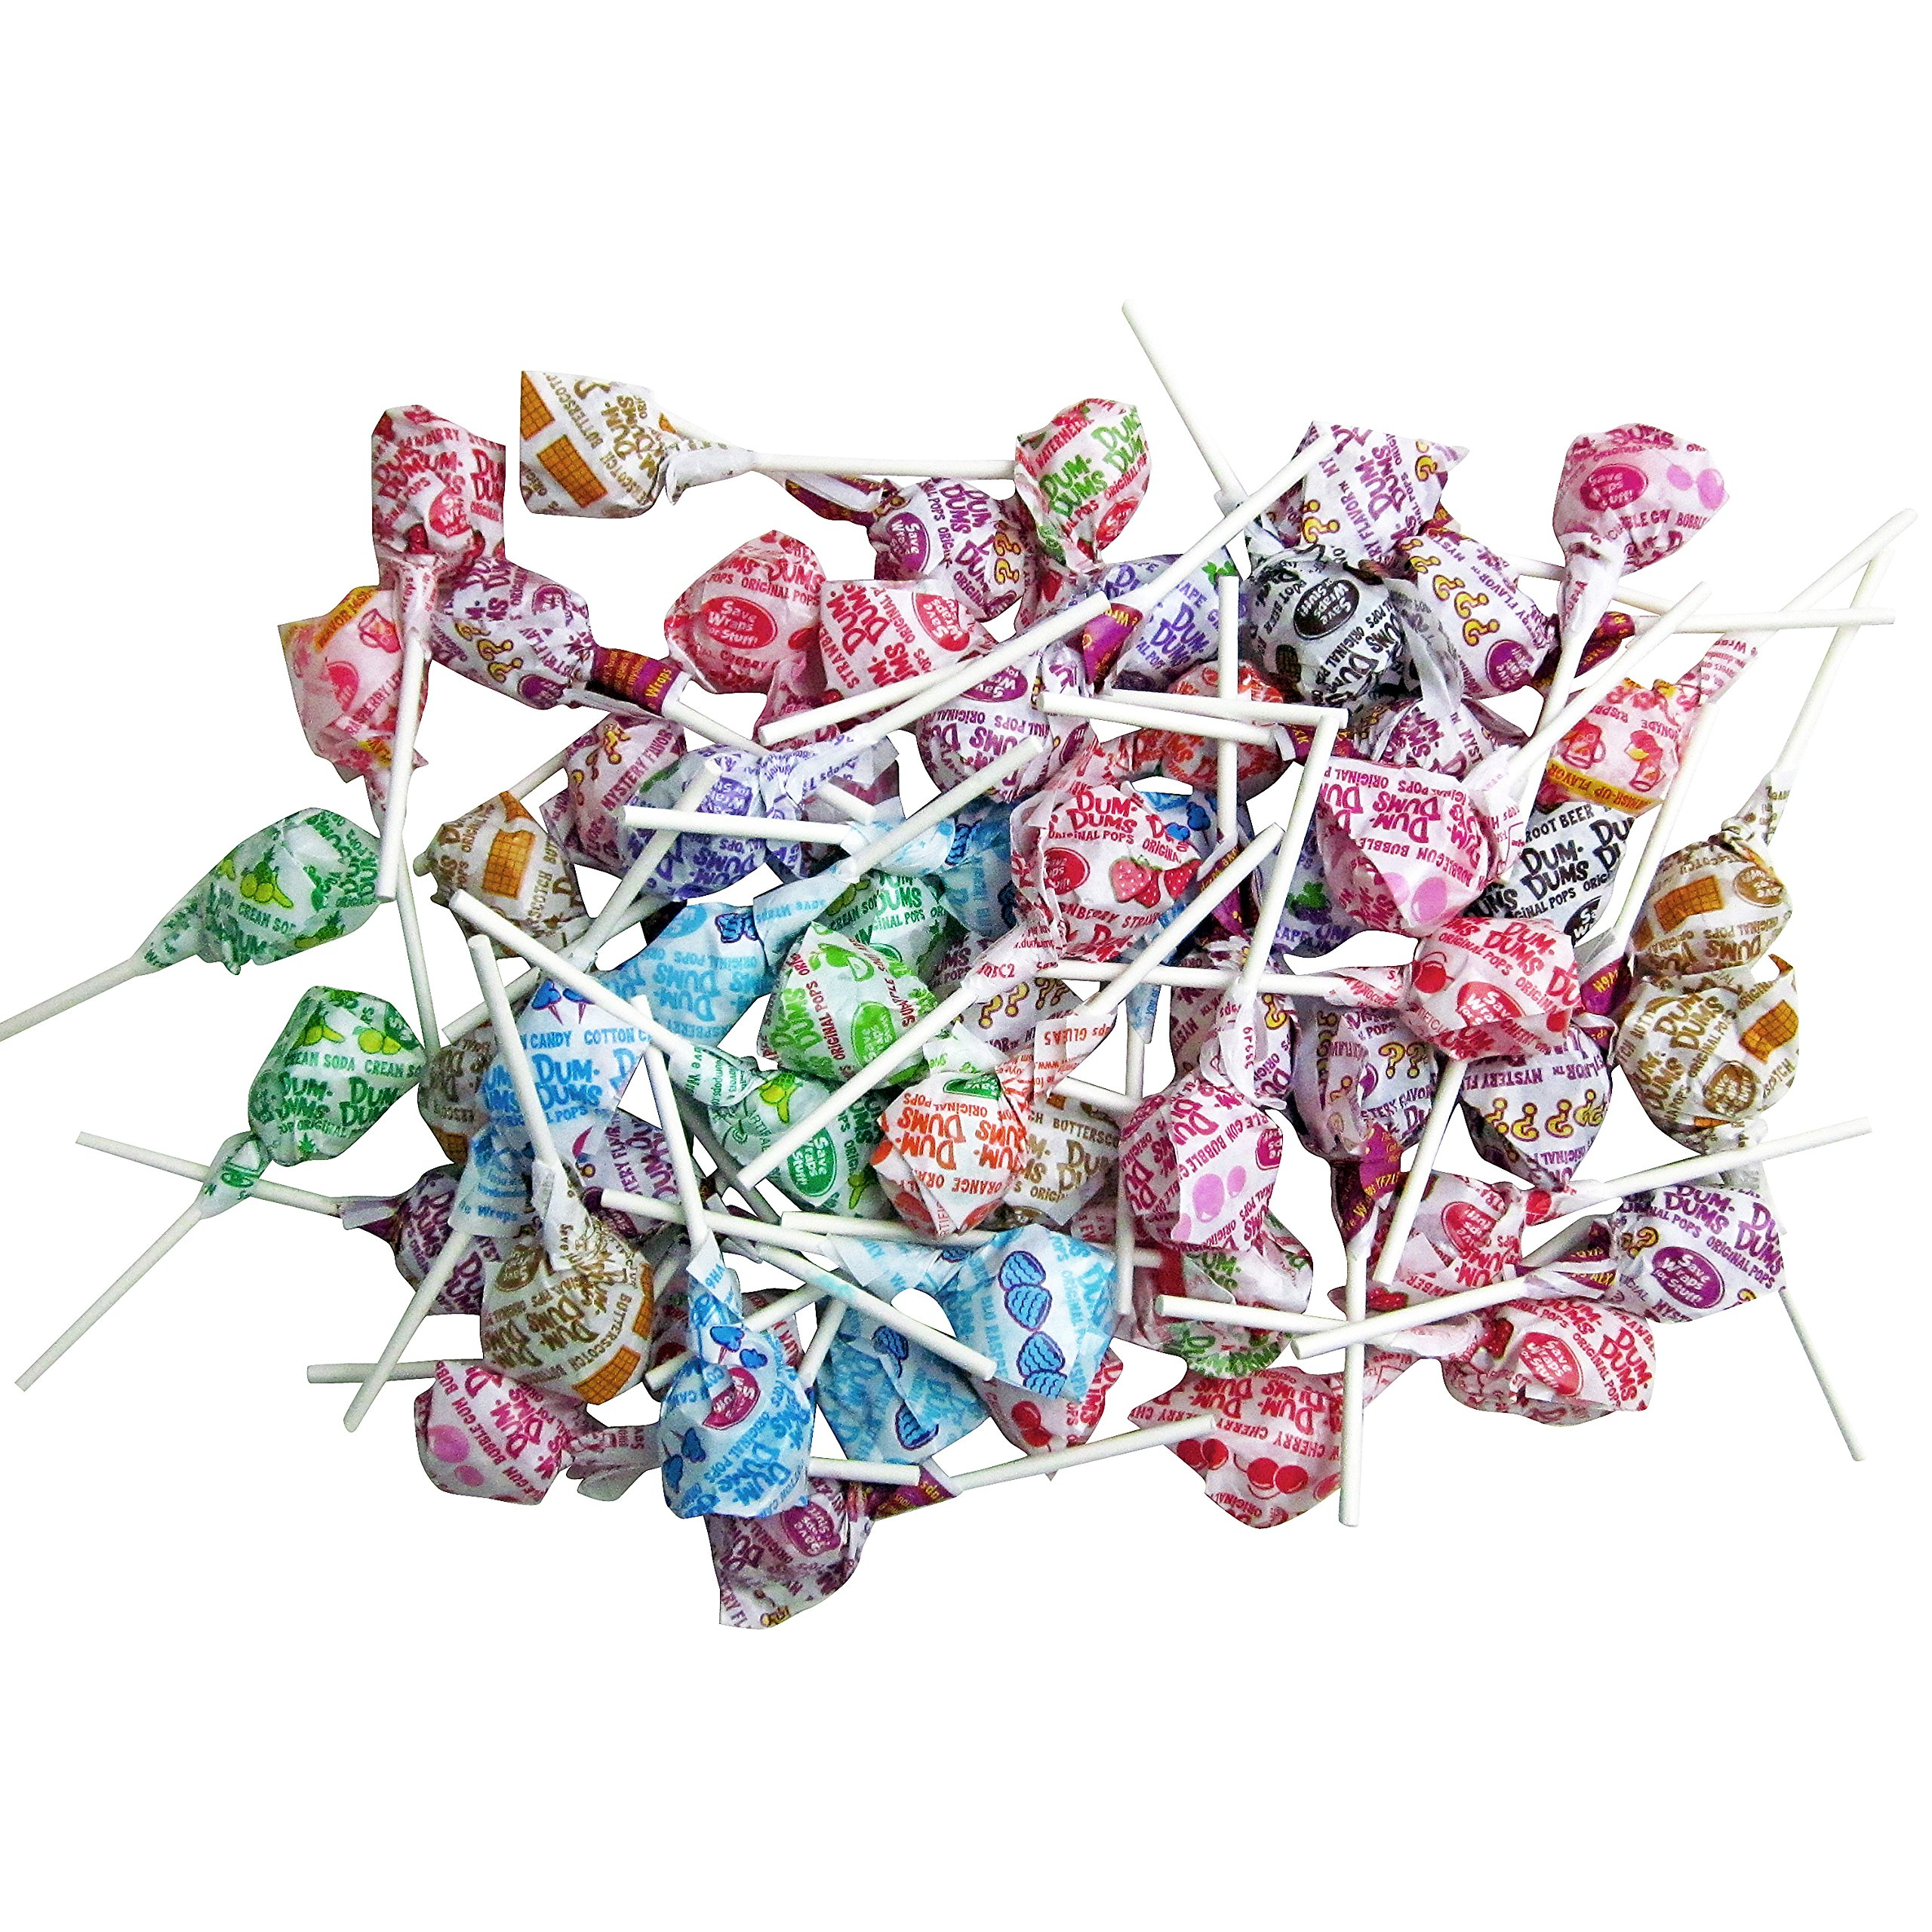 Dum Dums Pops by Spangler, Assorted Flavors Lollipops in 6x6x6 Box Bulk Candy, 2.4 lbs. - 38 oz. by Dum Dums (Image #4)